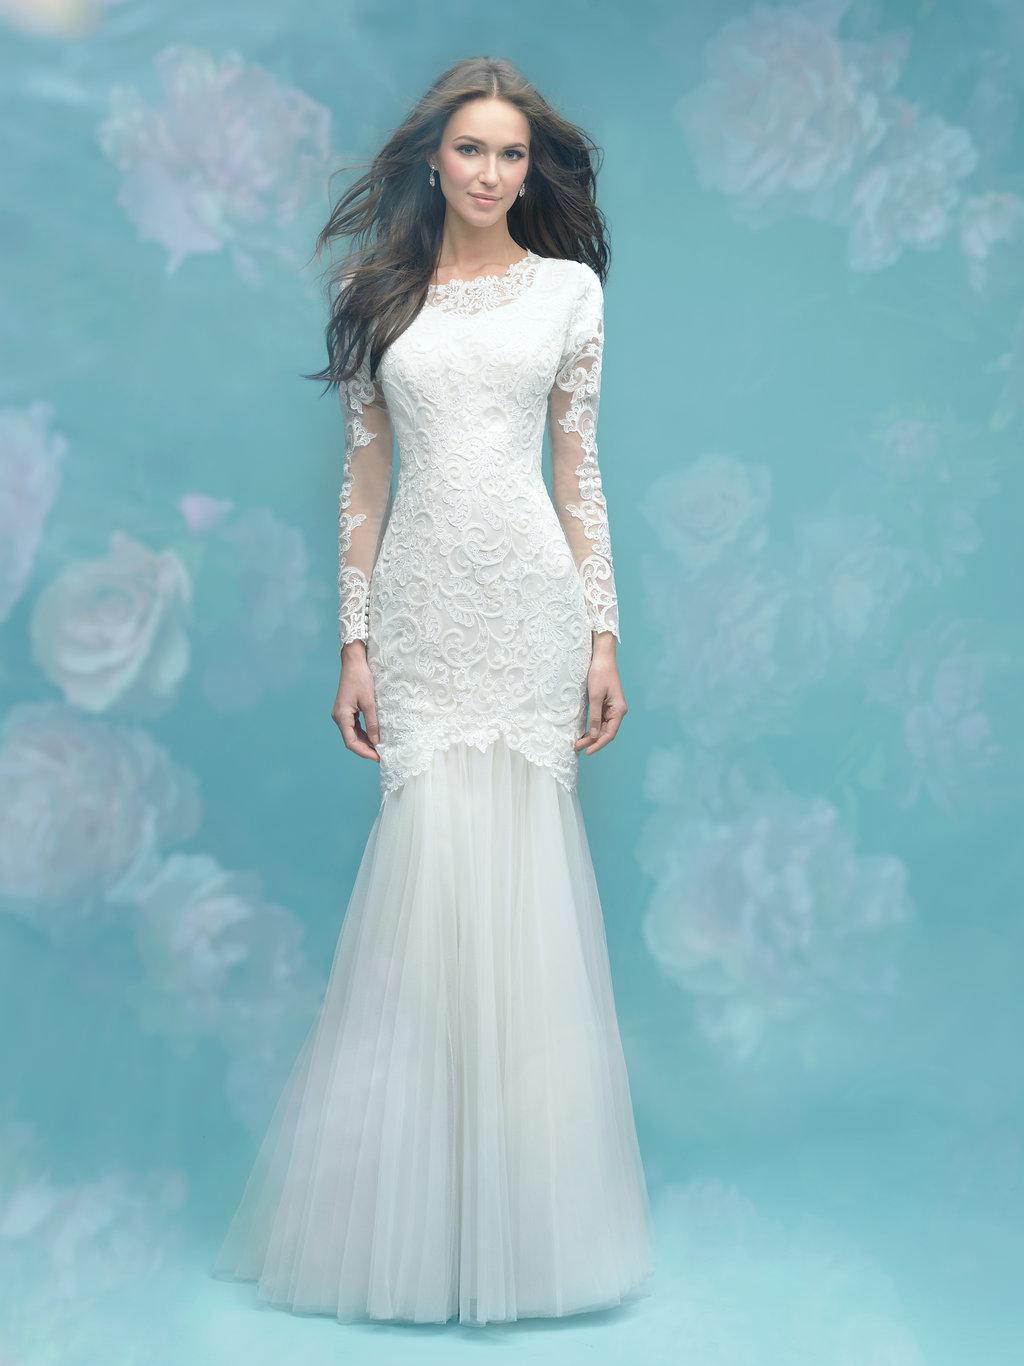 Allure M583 Modest Wedding Dress with long sleeves illusion lace fitted elegant LDS bridal gown